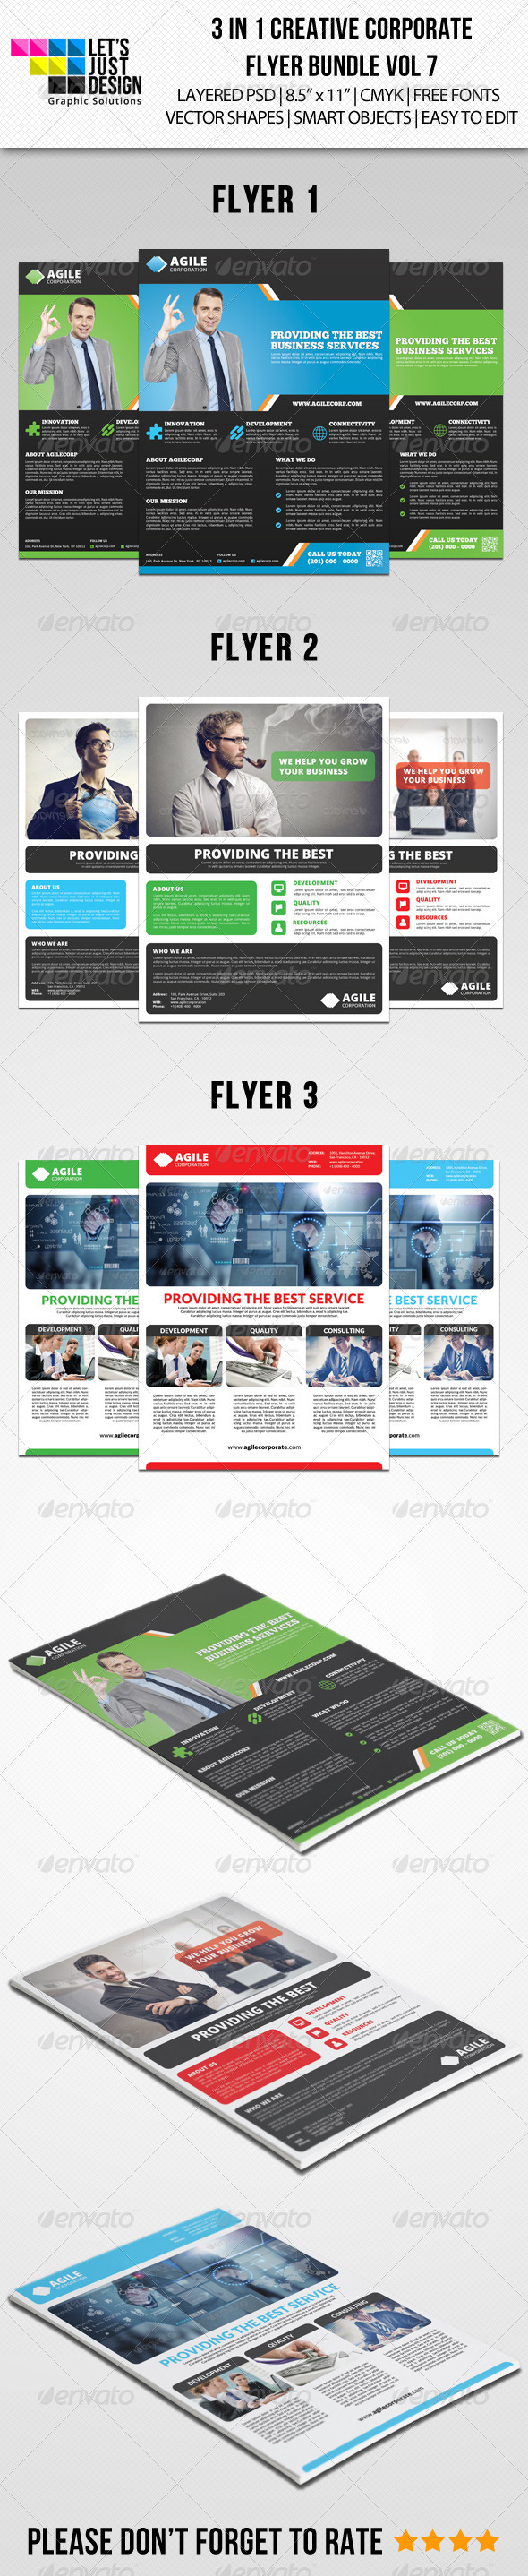 Creative Corporate Flyer Bundle Vol 7